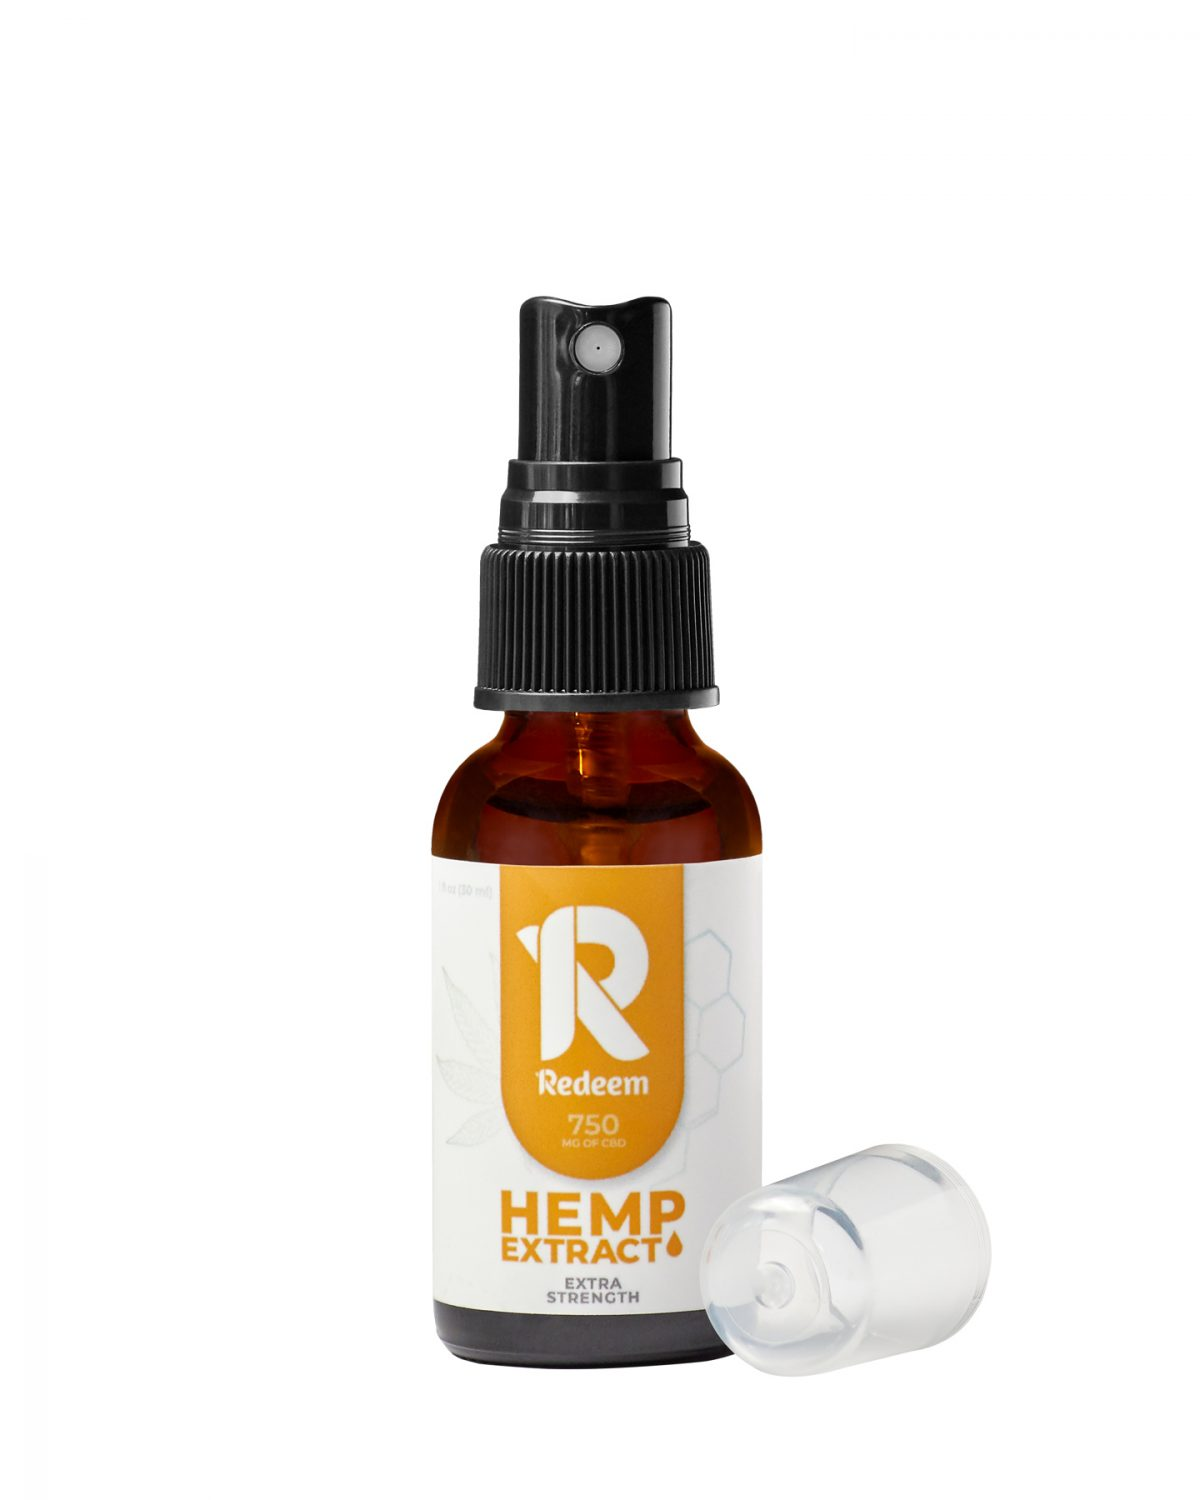 E-commerce product photography of a spray bottle of Redeem Therapeutics hemp extract